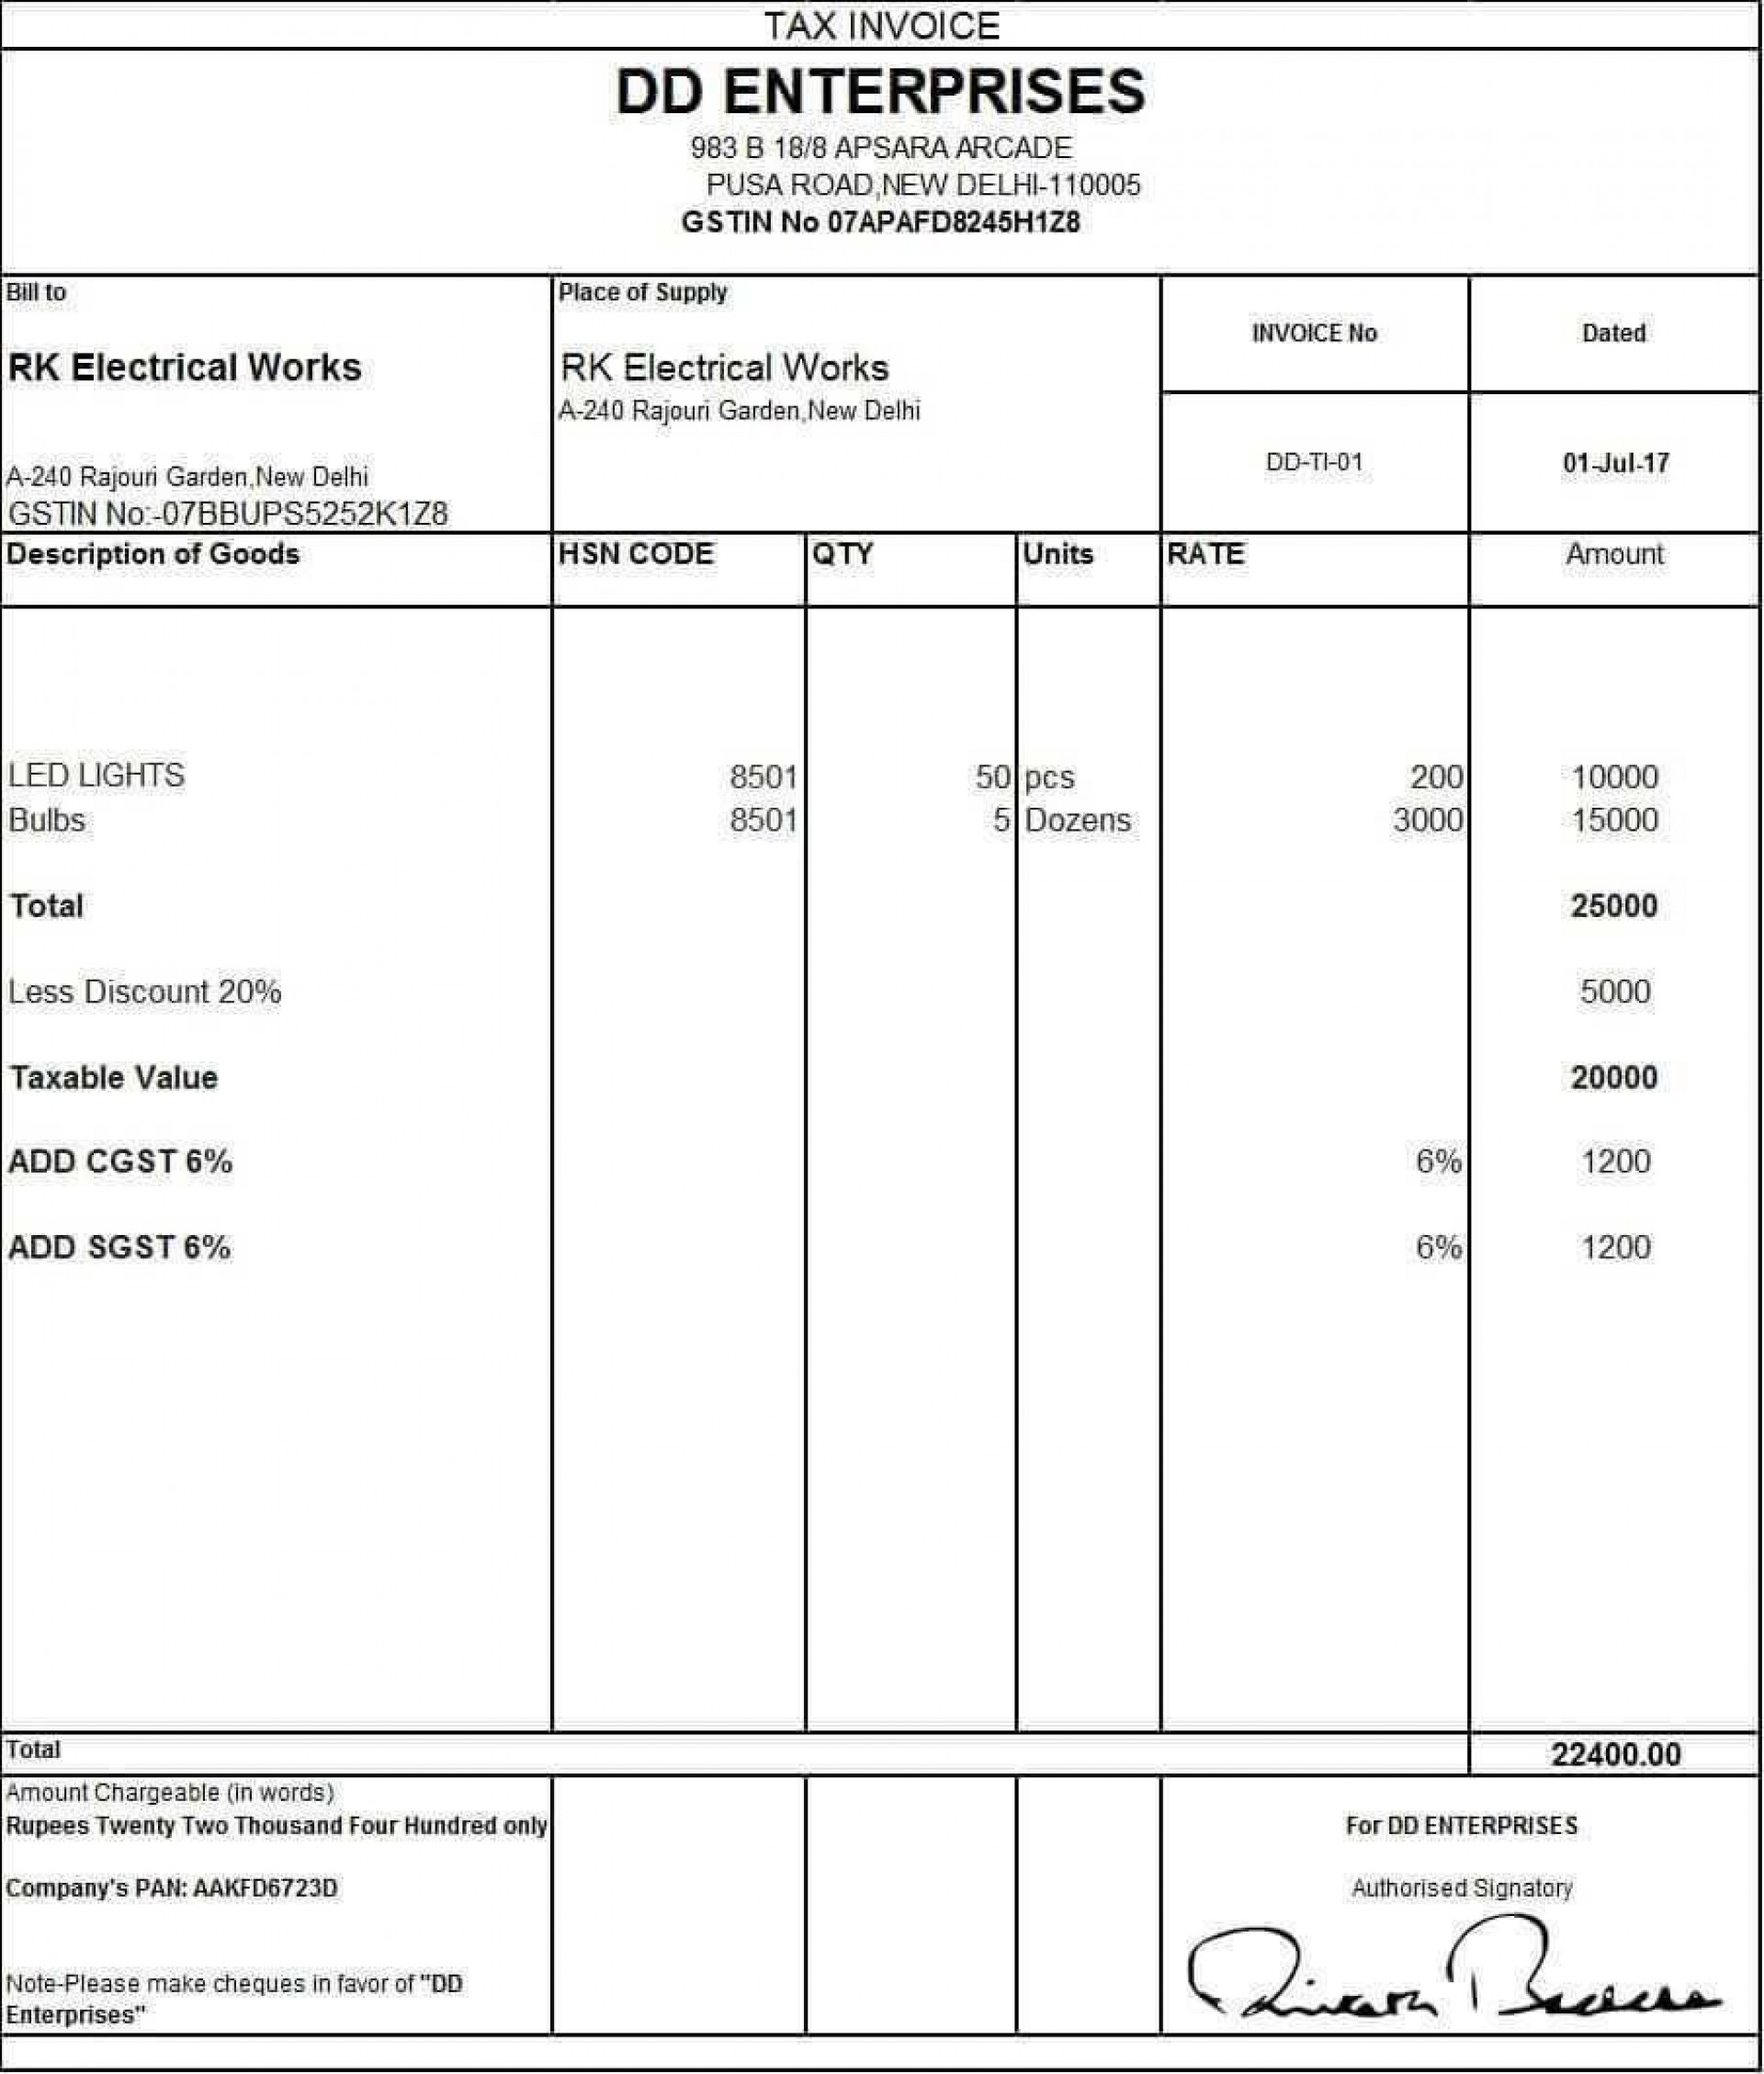 000 Staggering Sample Tax Invoice Excel Download Image 1920